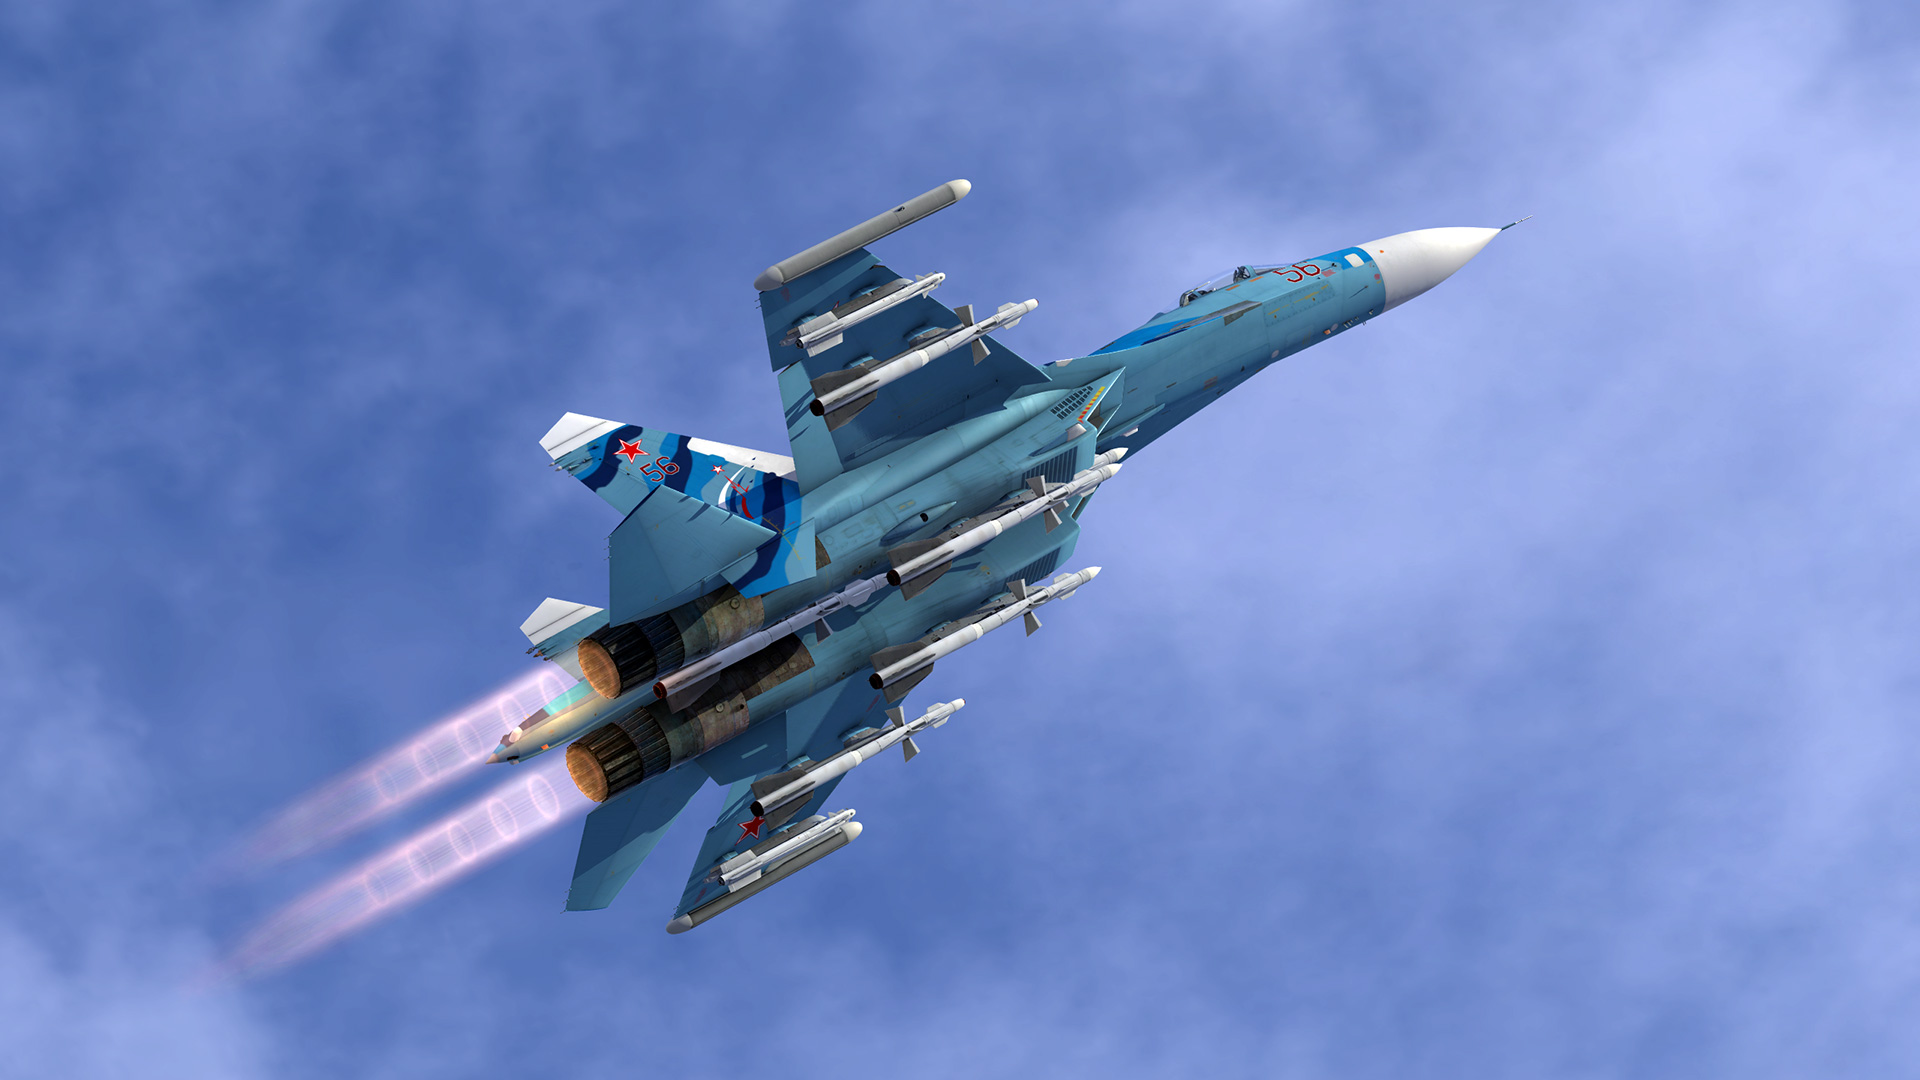 Cockpit Hd Wallpaper Su 27 New Afterburner Gfx Ed Forums